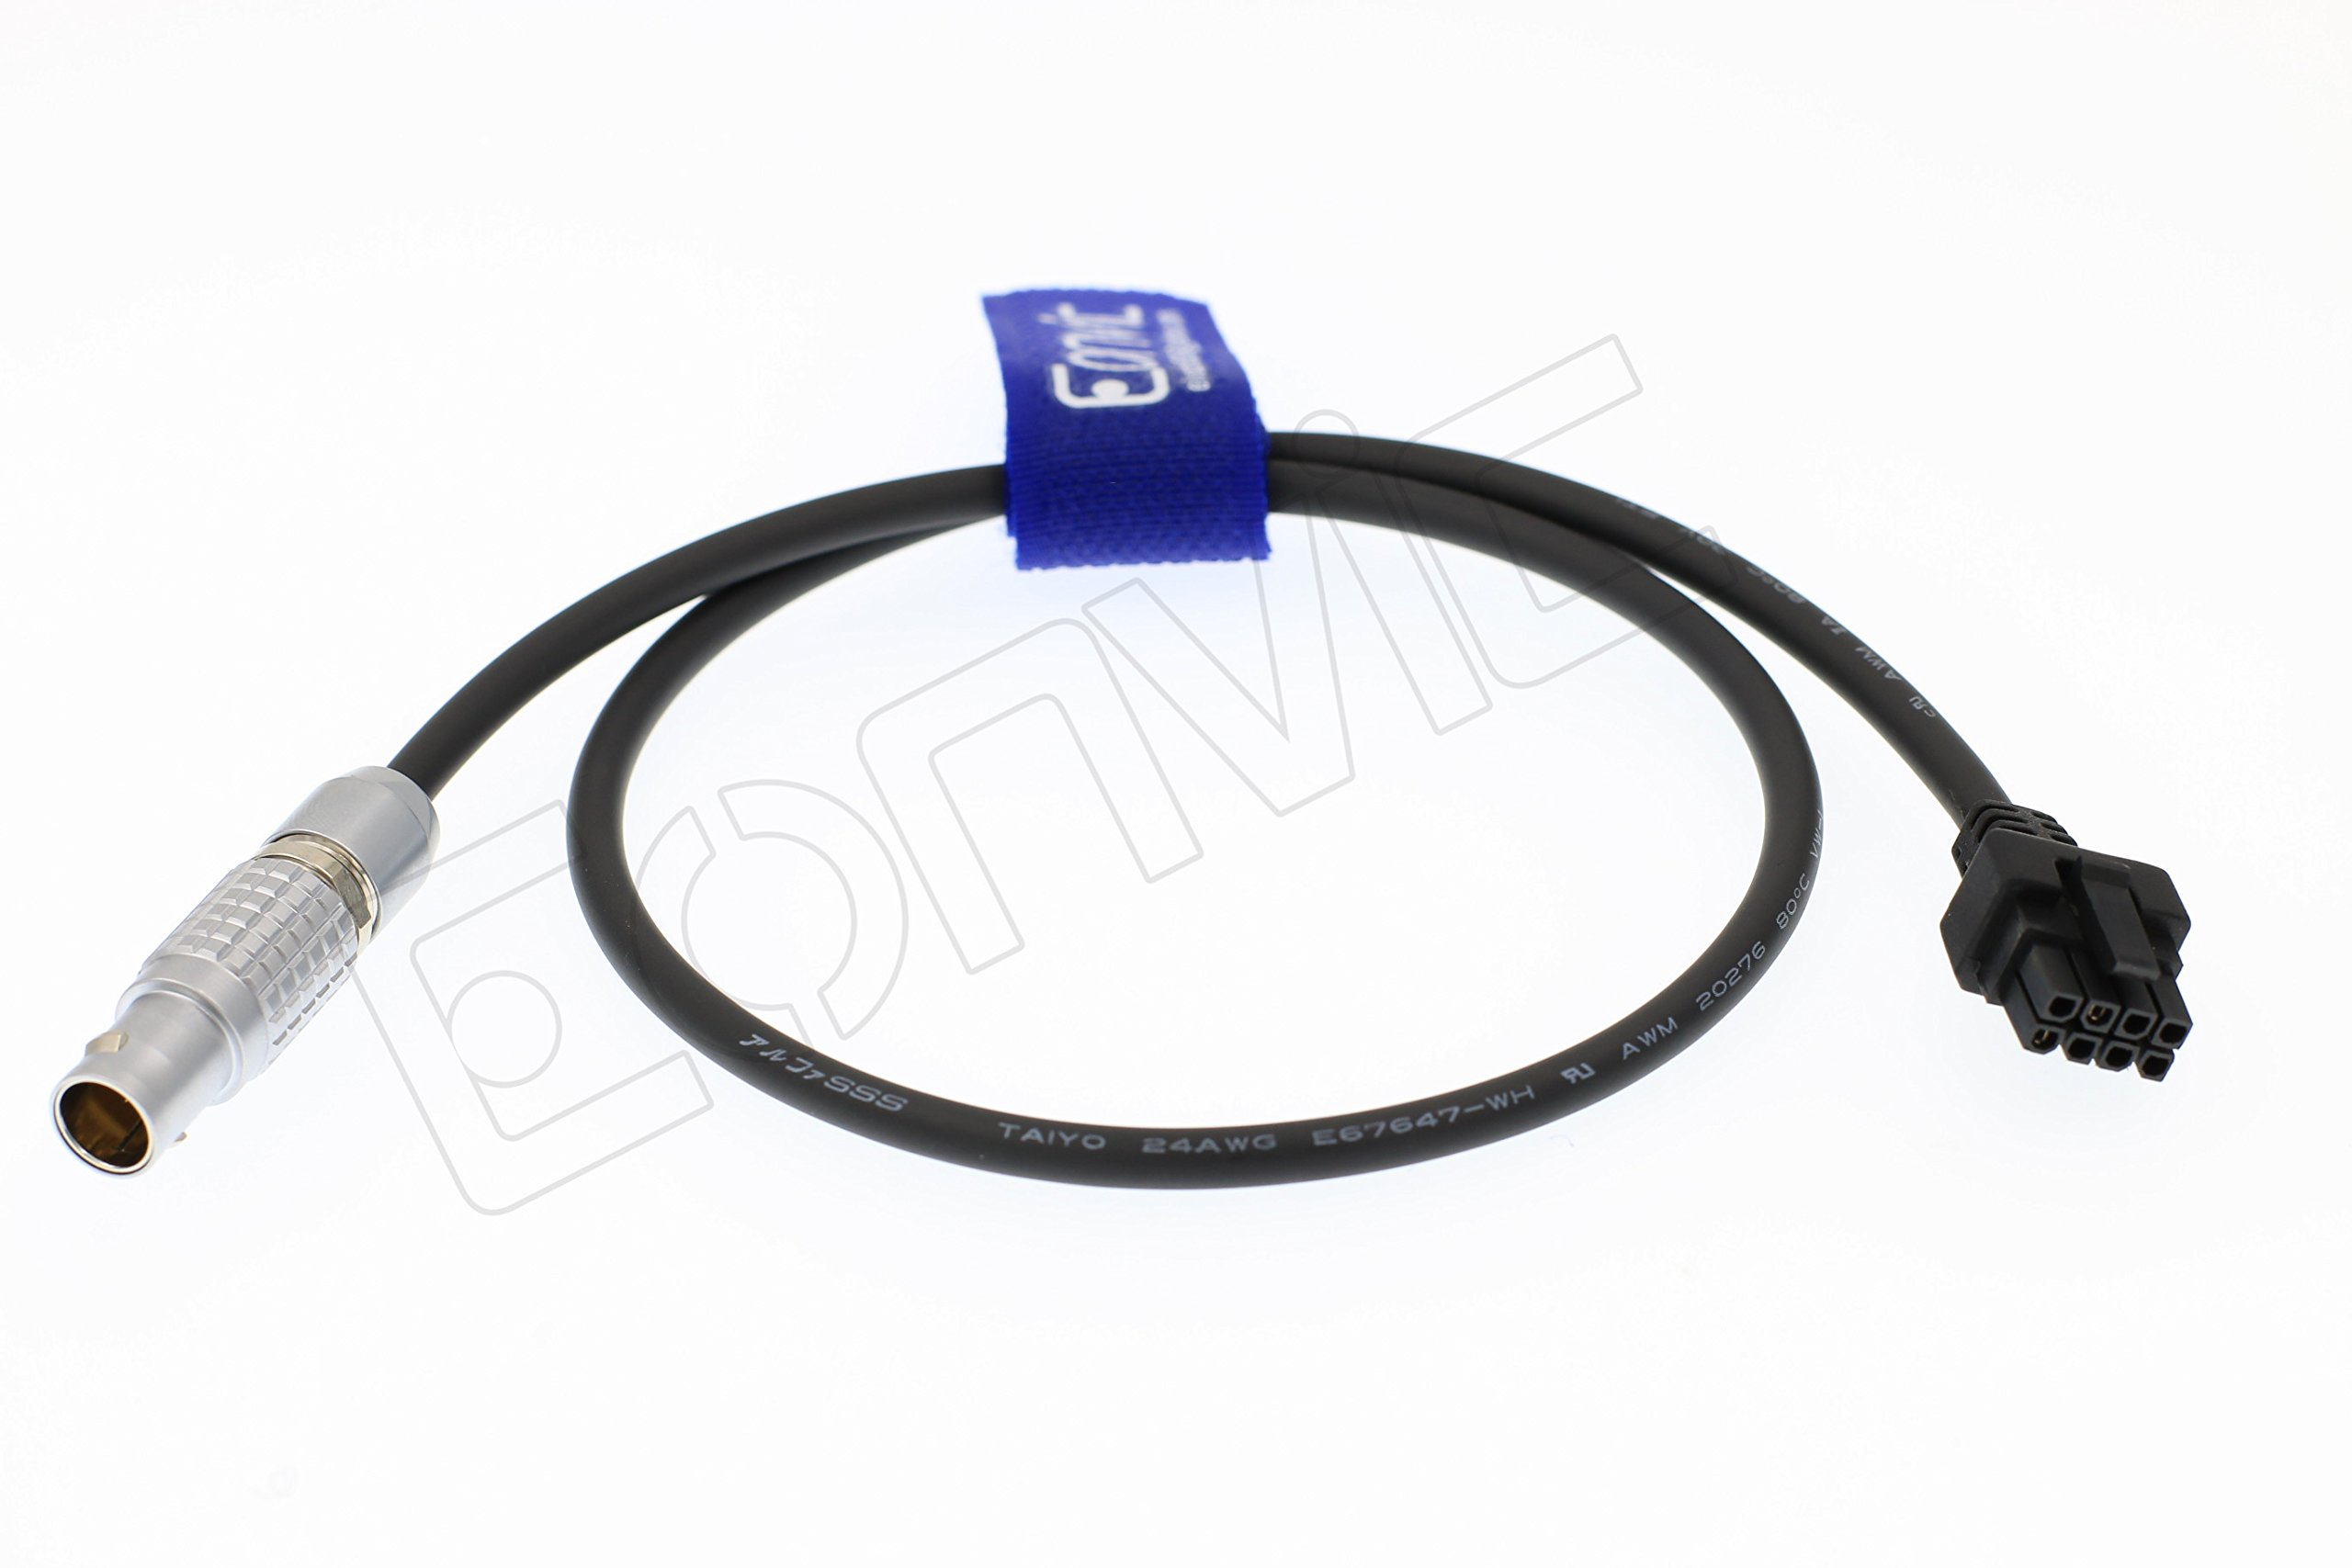 Eonvic Molex Microfit 1b 7pin MoVI Pro Lens Motor Cable/ ARRI Start-Stop Cable for MoVI Pro Gimbal by Eonvic